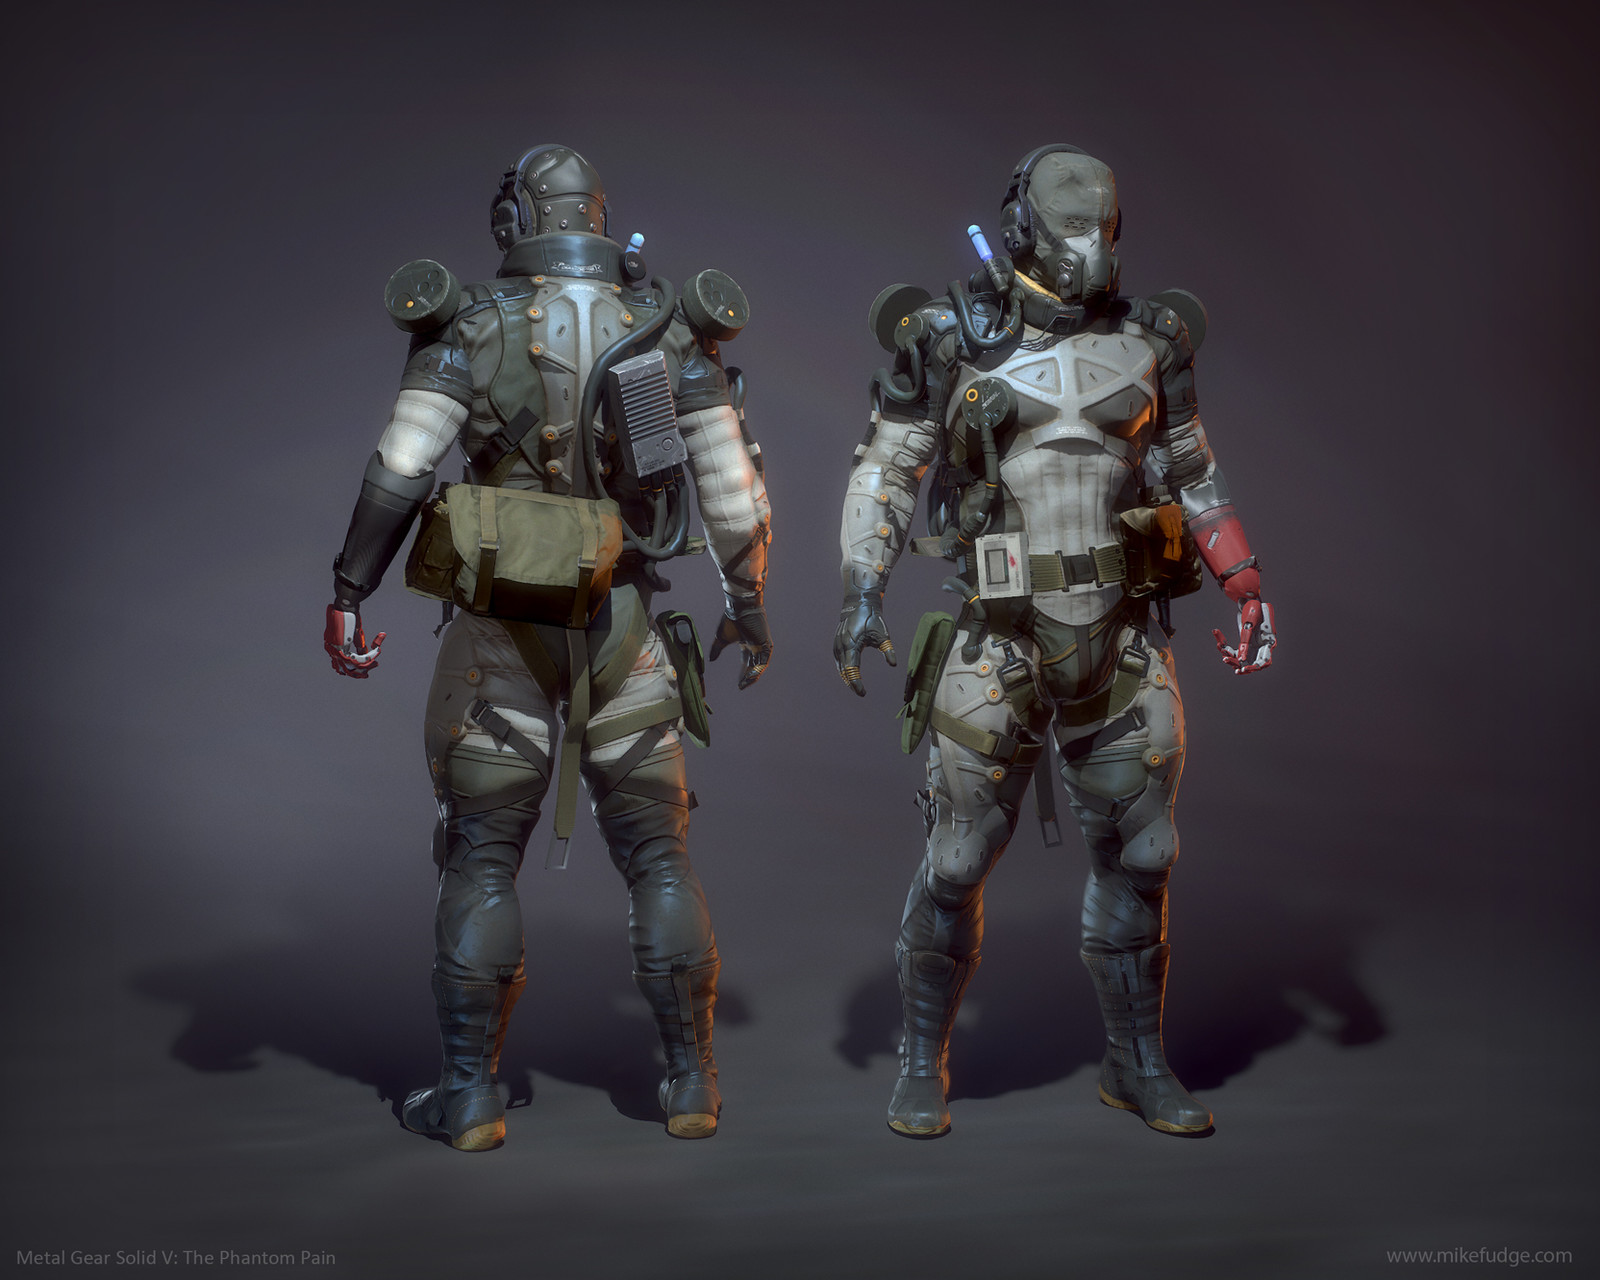 Metal Gear Solid V: The Phantom Pain - Snake Parasite Suit